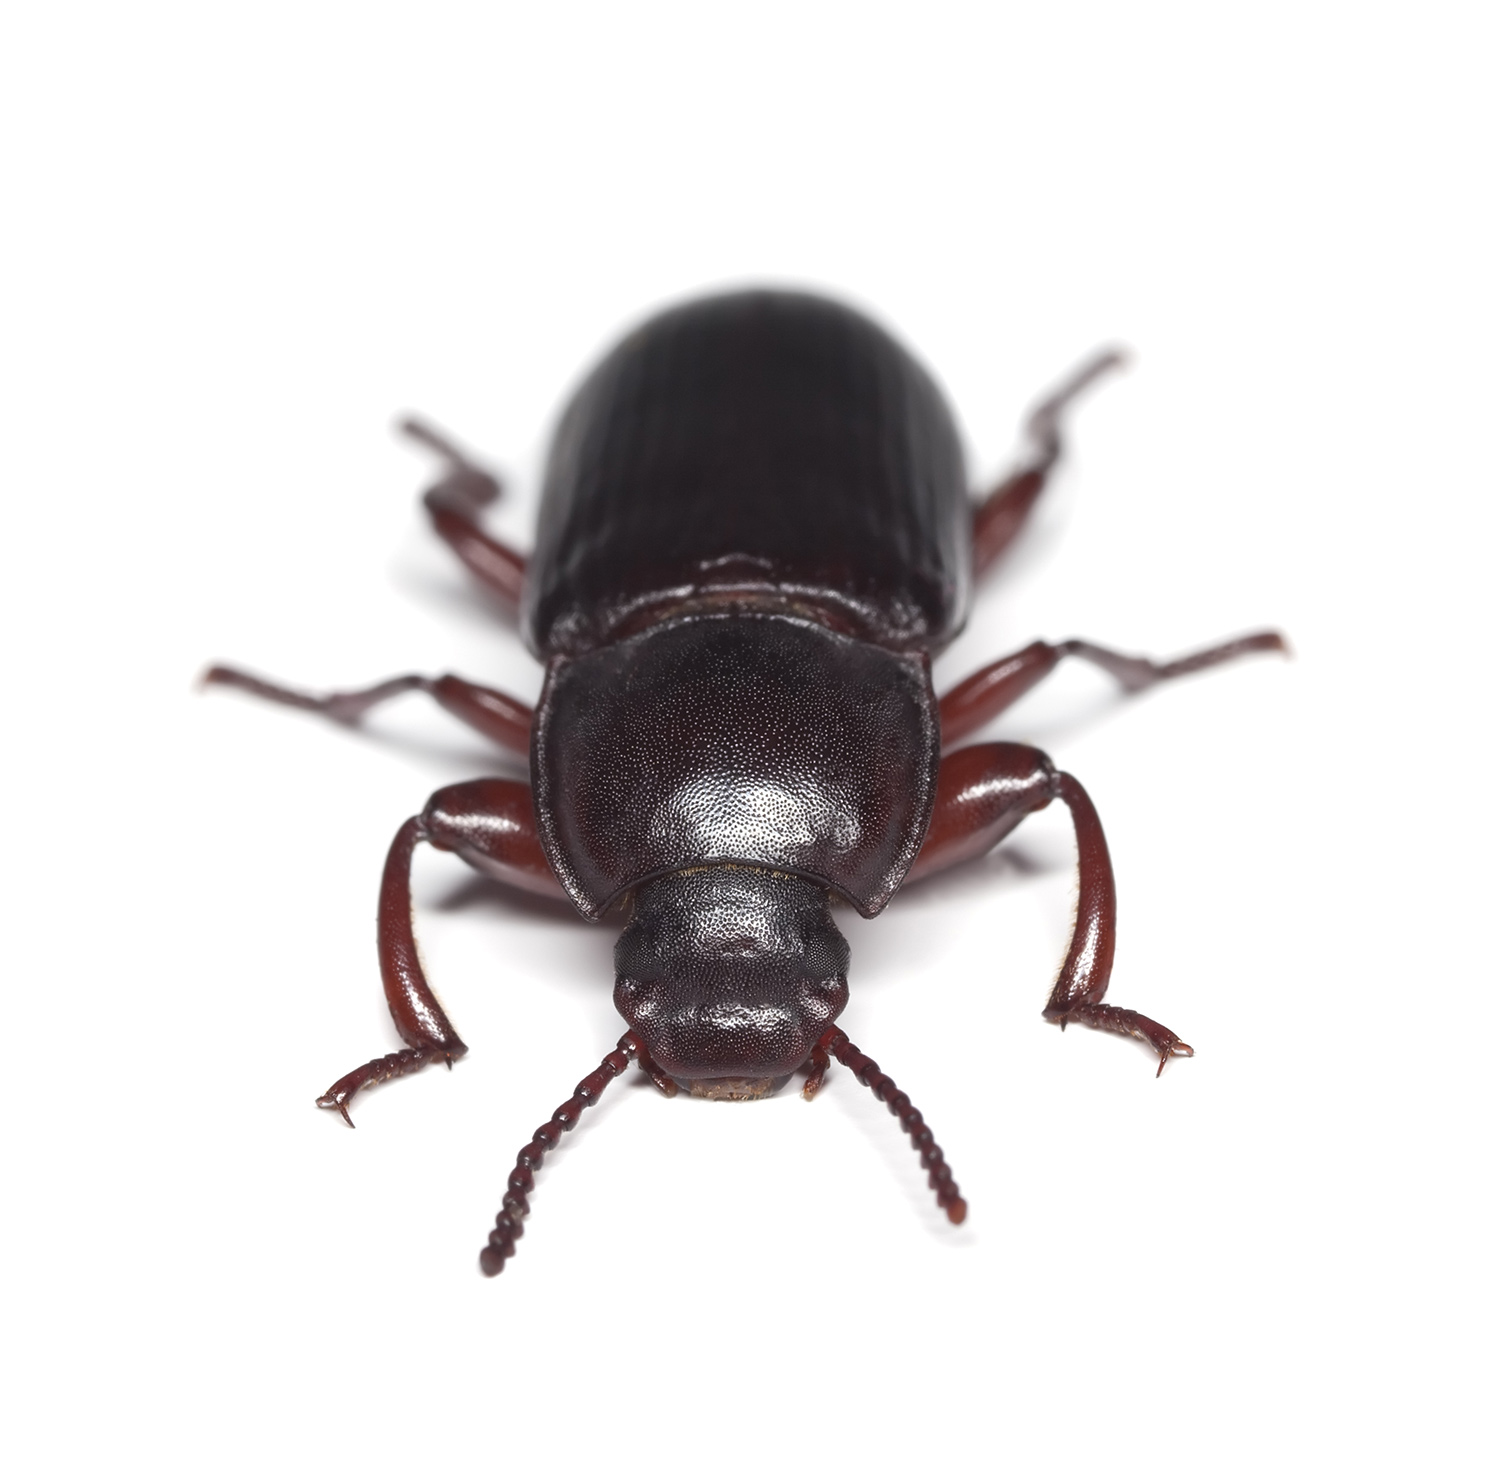 Pantry Beetle Control Flour Beetles How To Get Rid Of